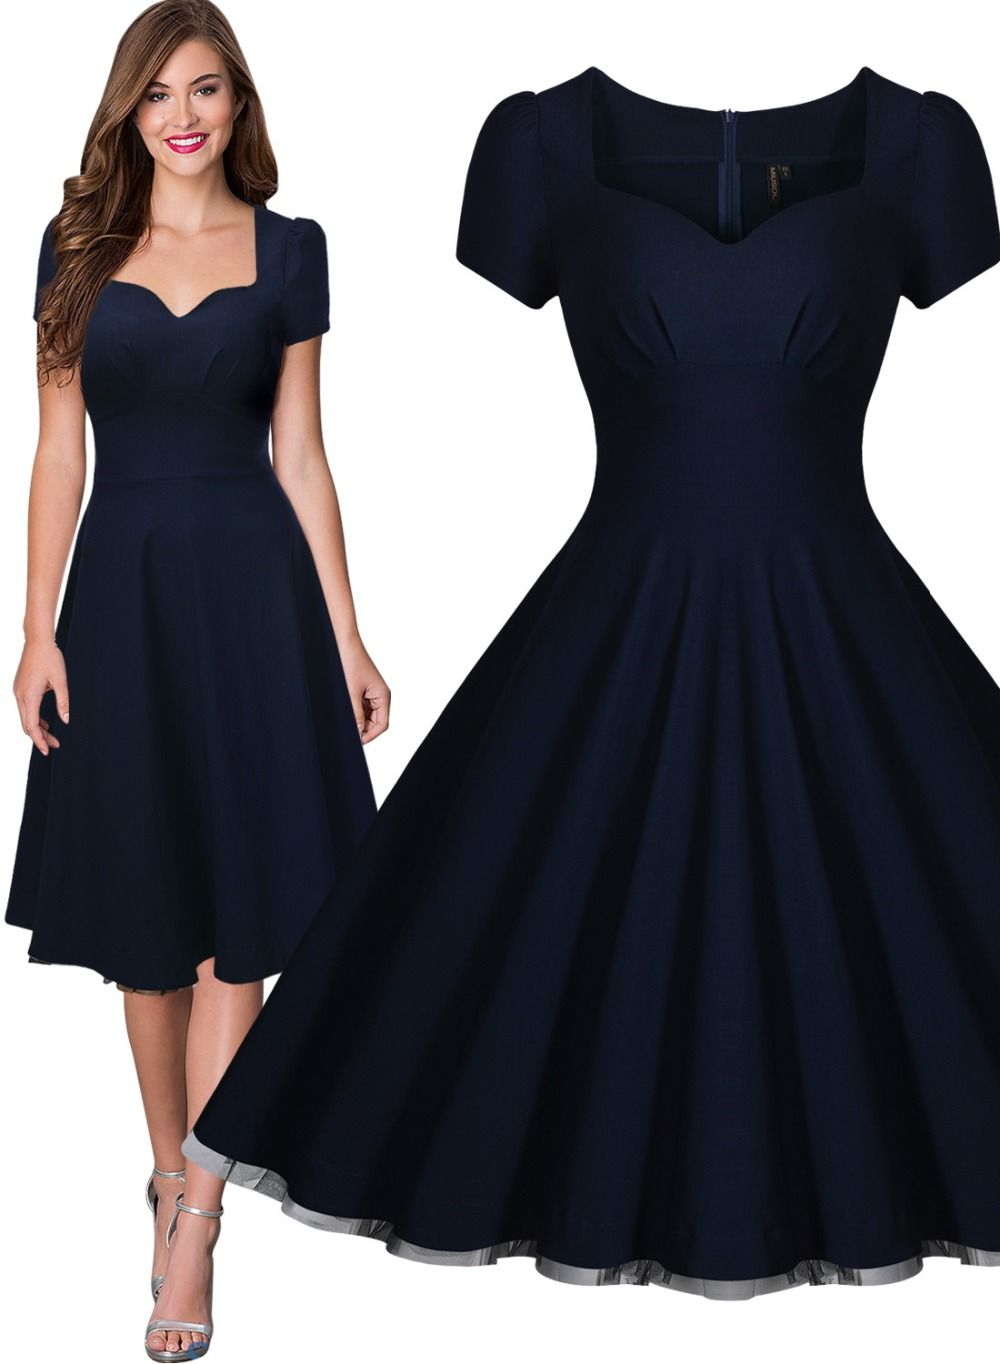 Free shipping Women s Vintage Style Retro 1940s Shirtwaist Flared Tea Dress  Swing Skaters Ball Gown Summer dress 3230(China (Mainland)) 649e38af7d